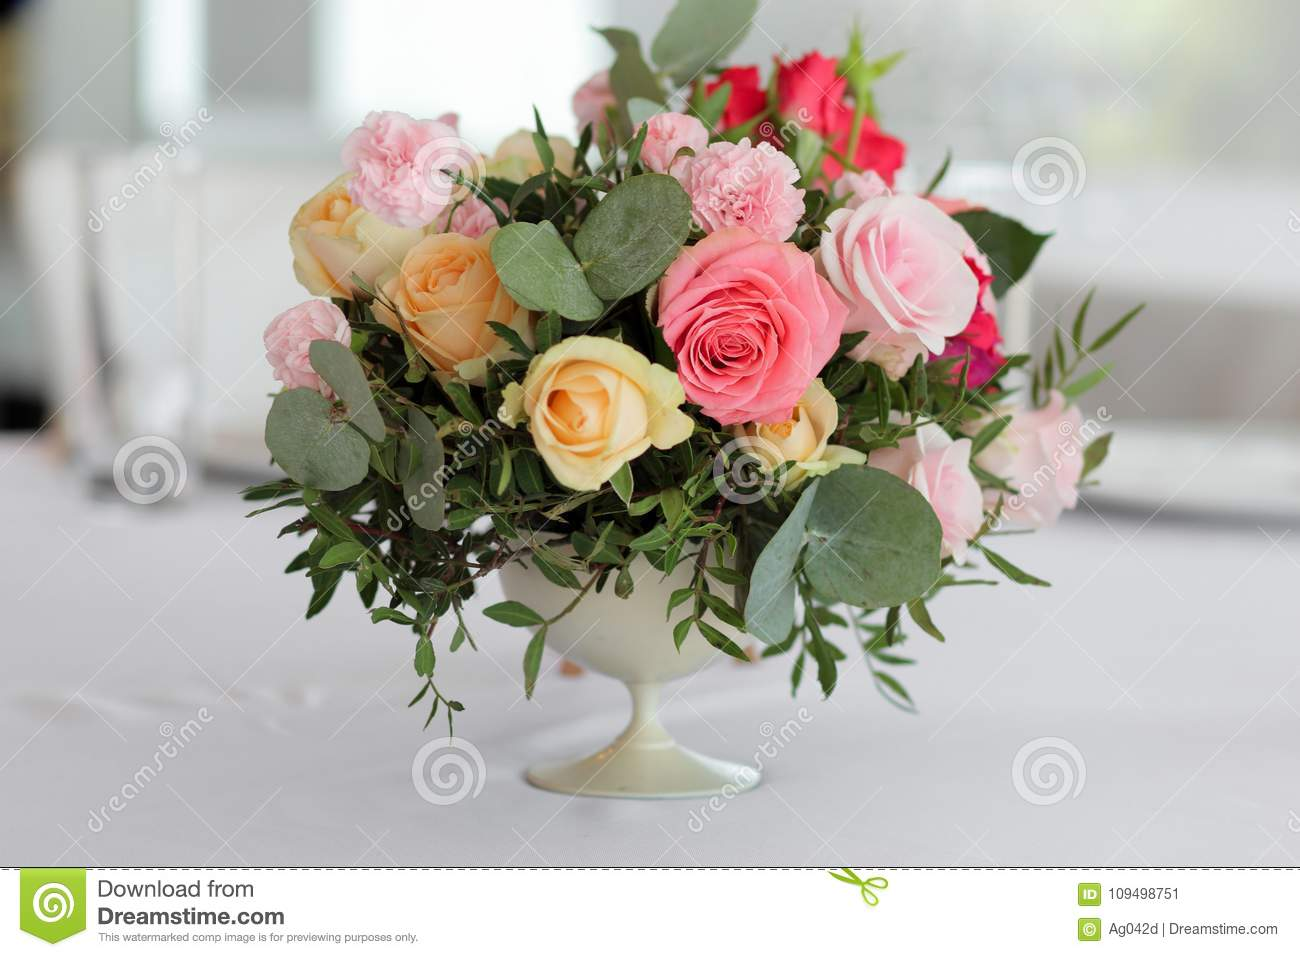 Wedding Flowers In A Vase On The Table Wedding Decor Stock Image